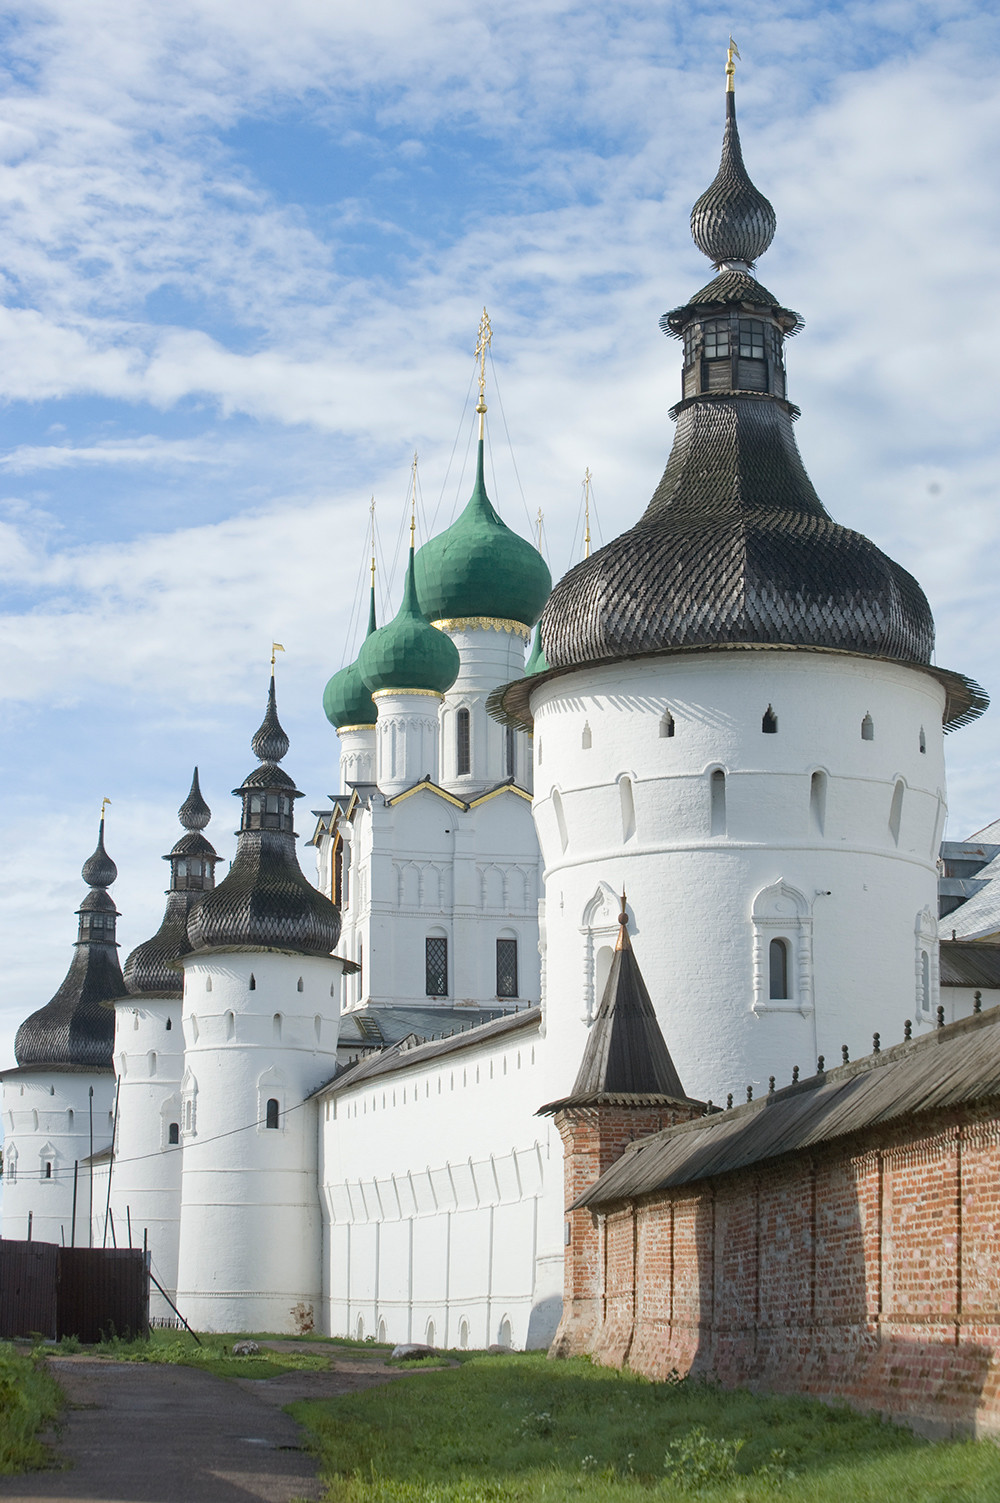 Rostov kremlin. West wall with Church of St. John the Divine over West Gate. Southwest view. July 2019